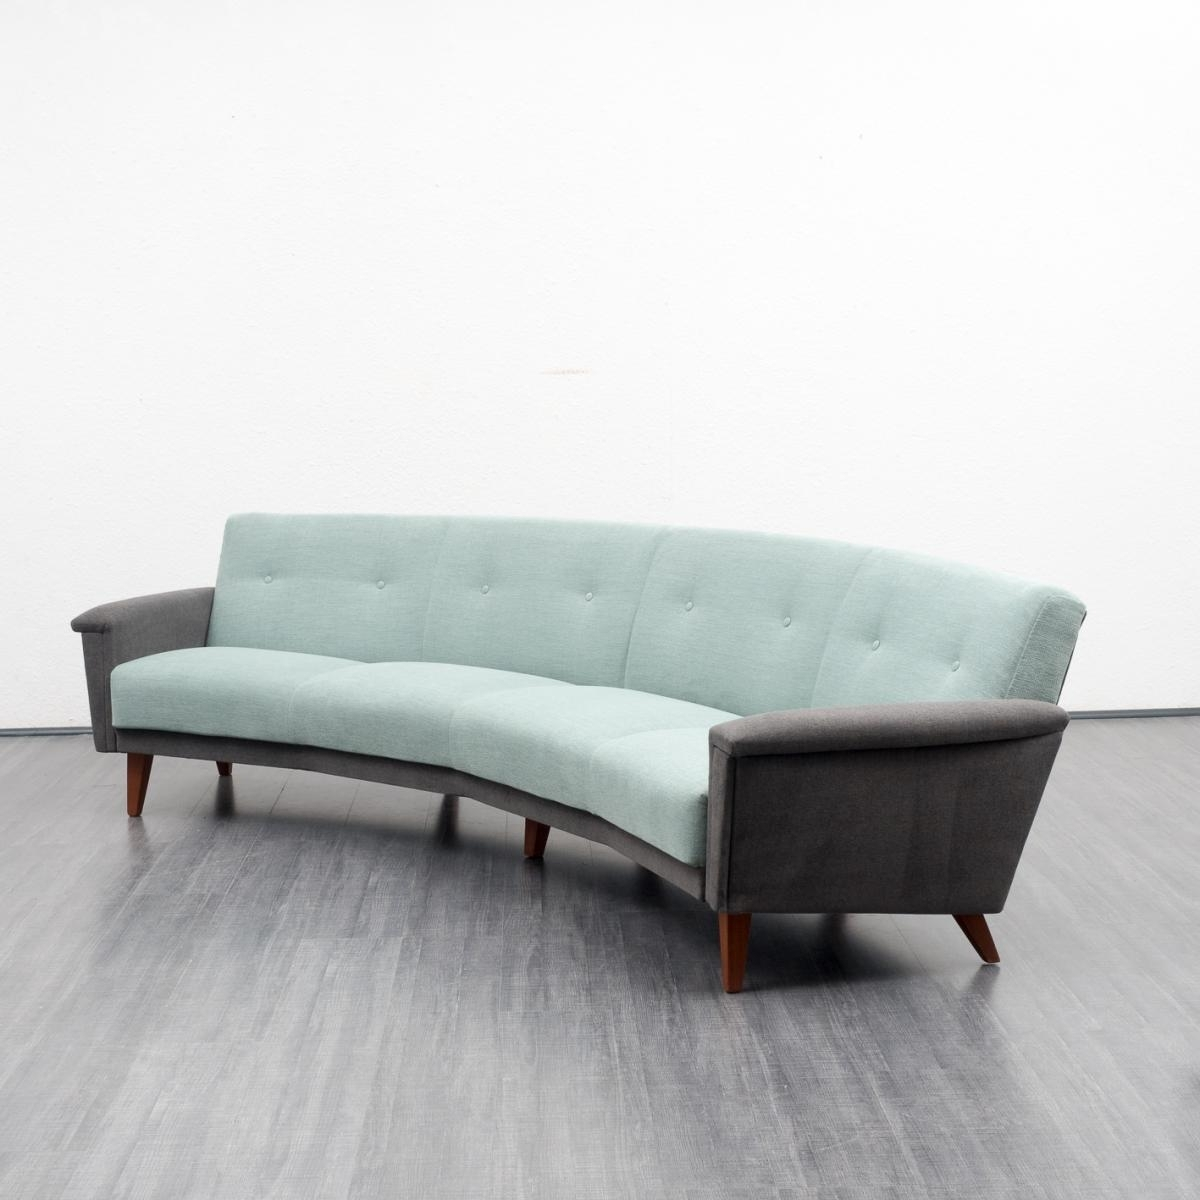 Large Semicircular Sofa, 1950S For Sale At Pamono Throughout Popular Semicircular Sofas (View 7 of 20)